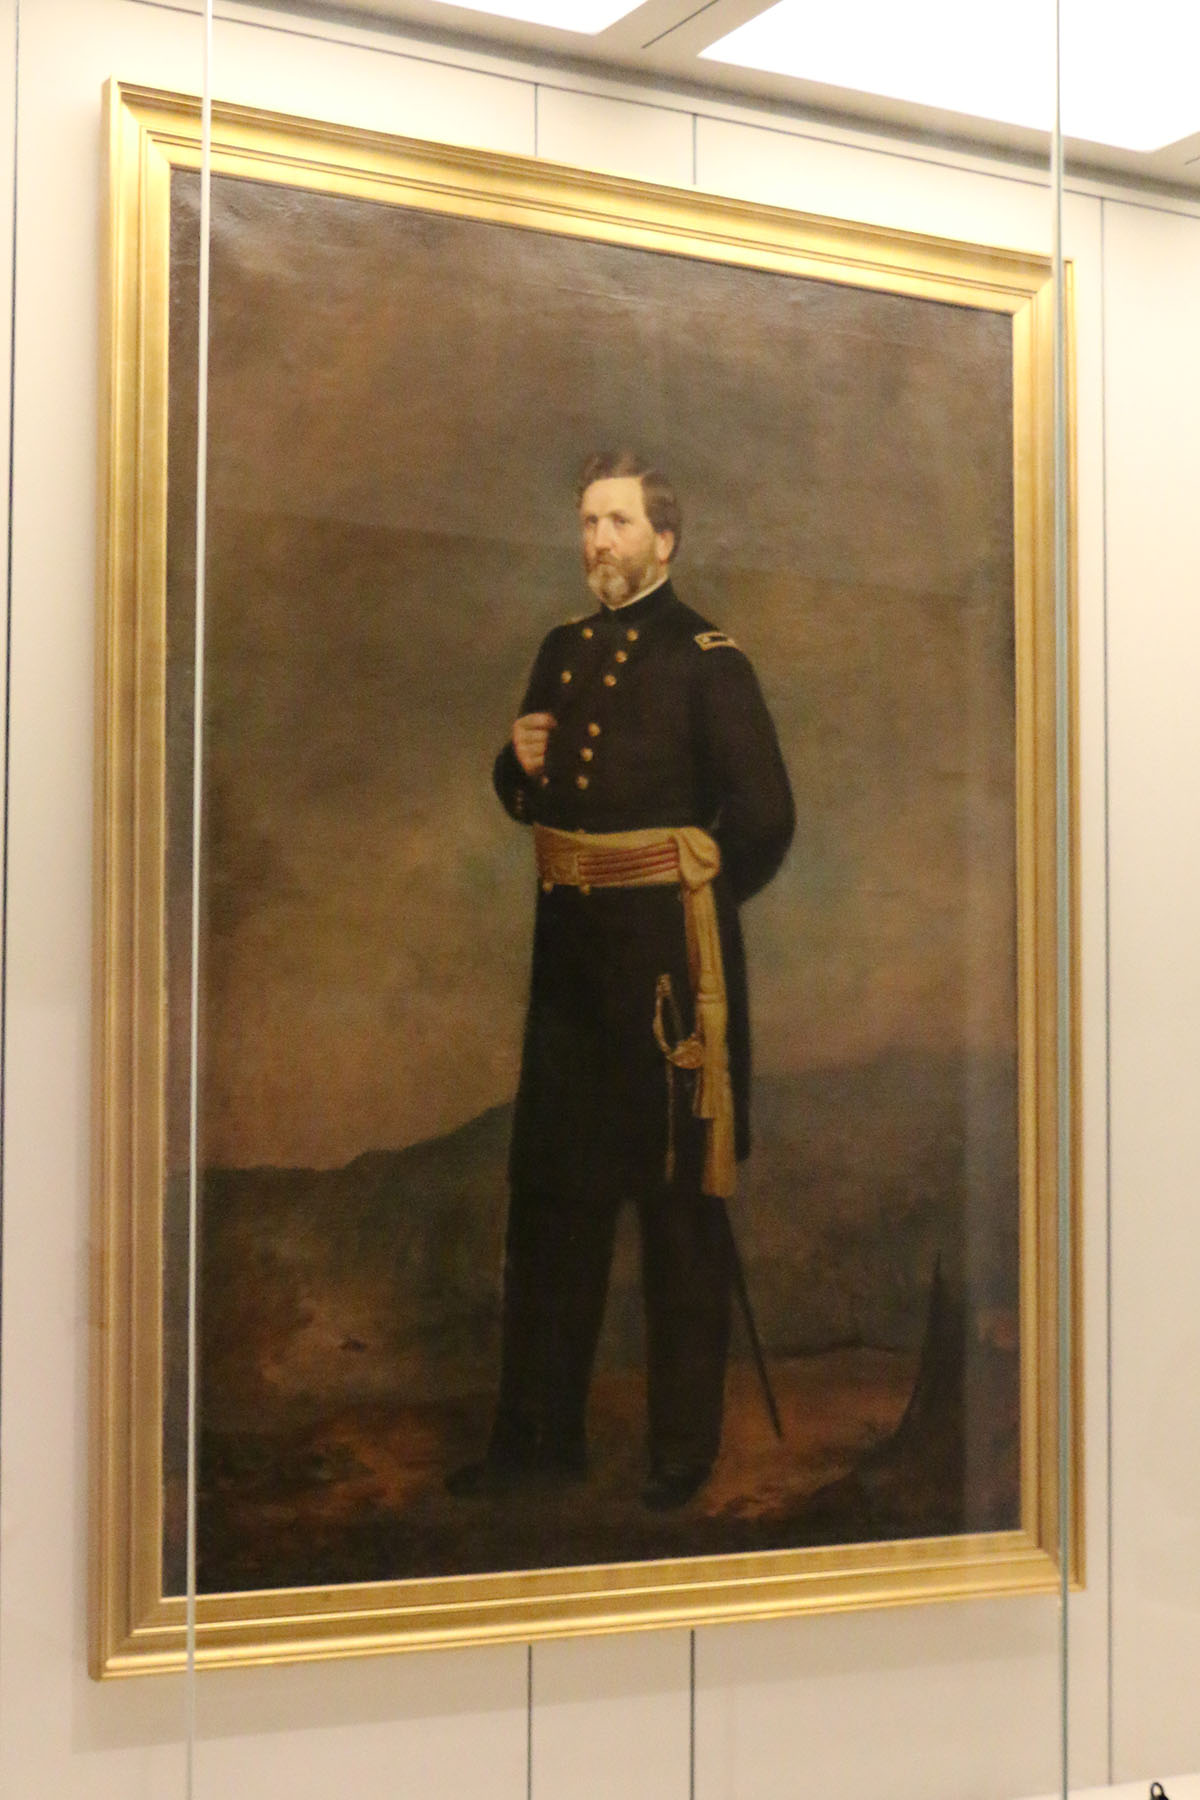 Painting of GEORGE HENRY THOMAS (1816 – 1870) Major General, United States Army, Mexican-American War, Civil War Oil on Canvas, by George Dury, 1866